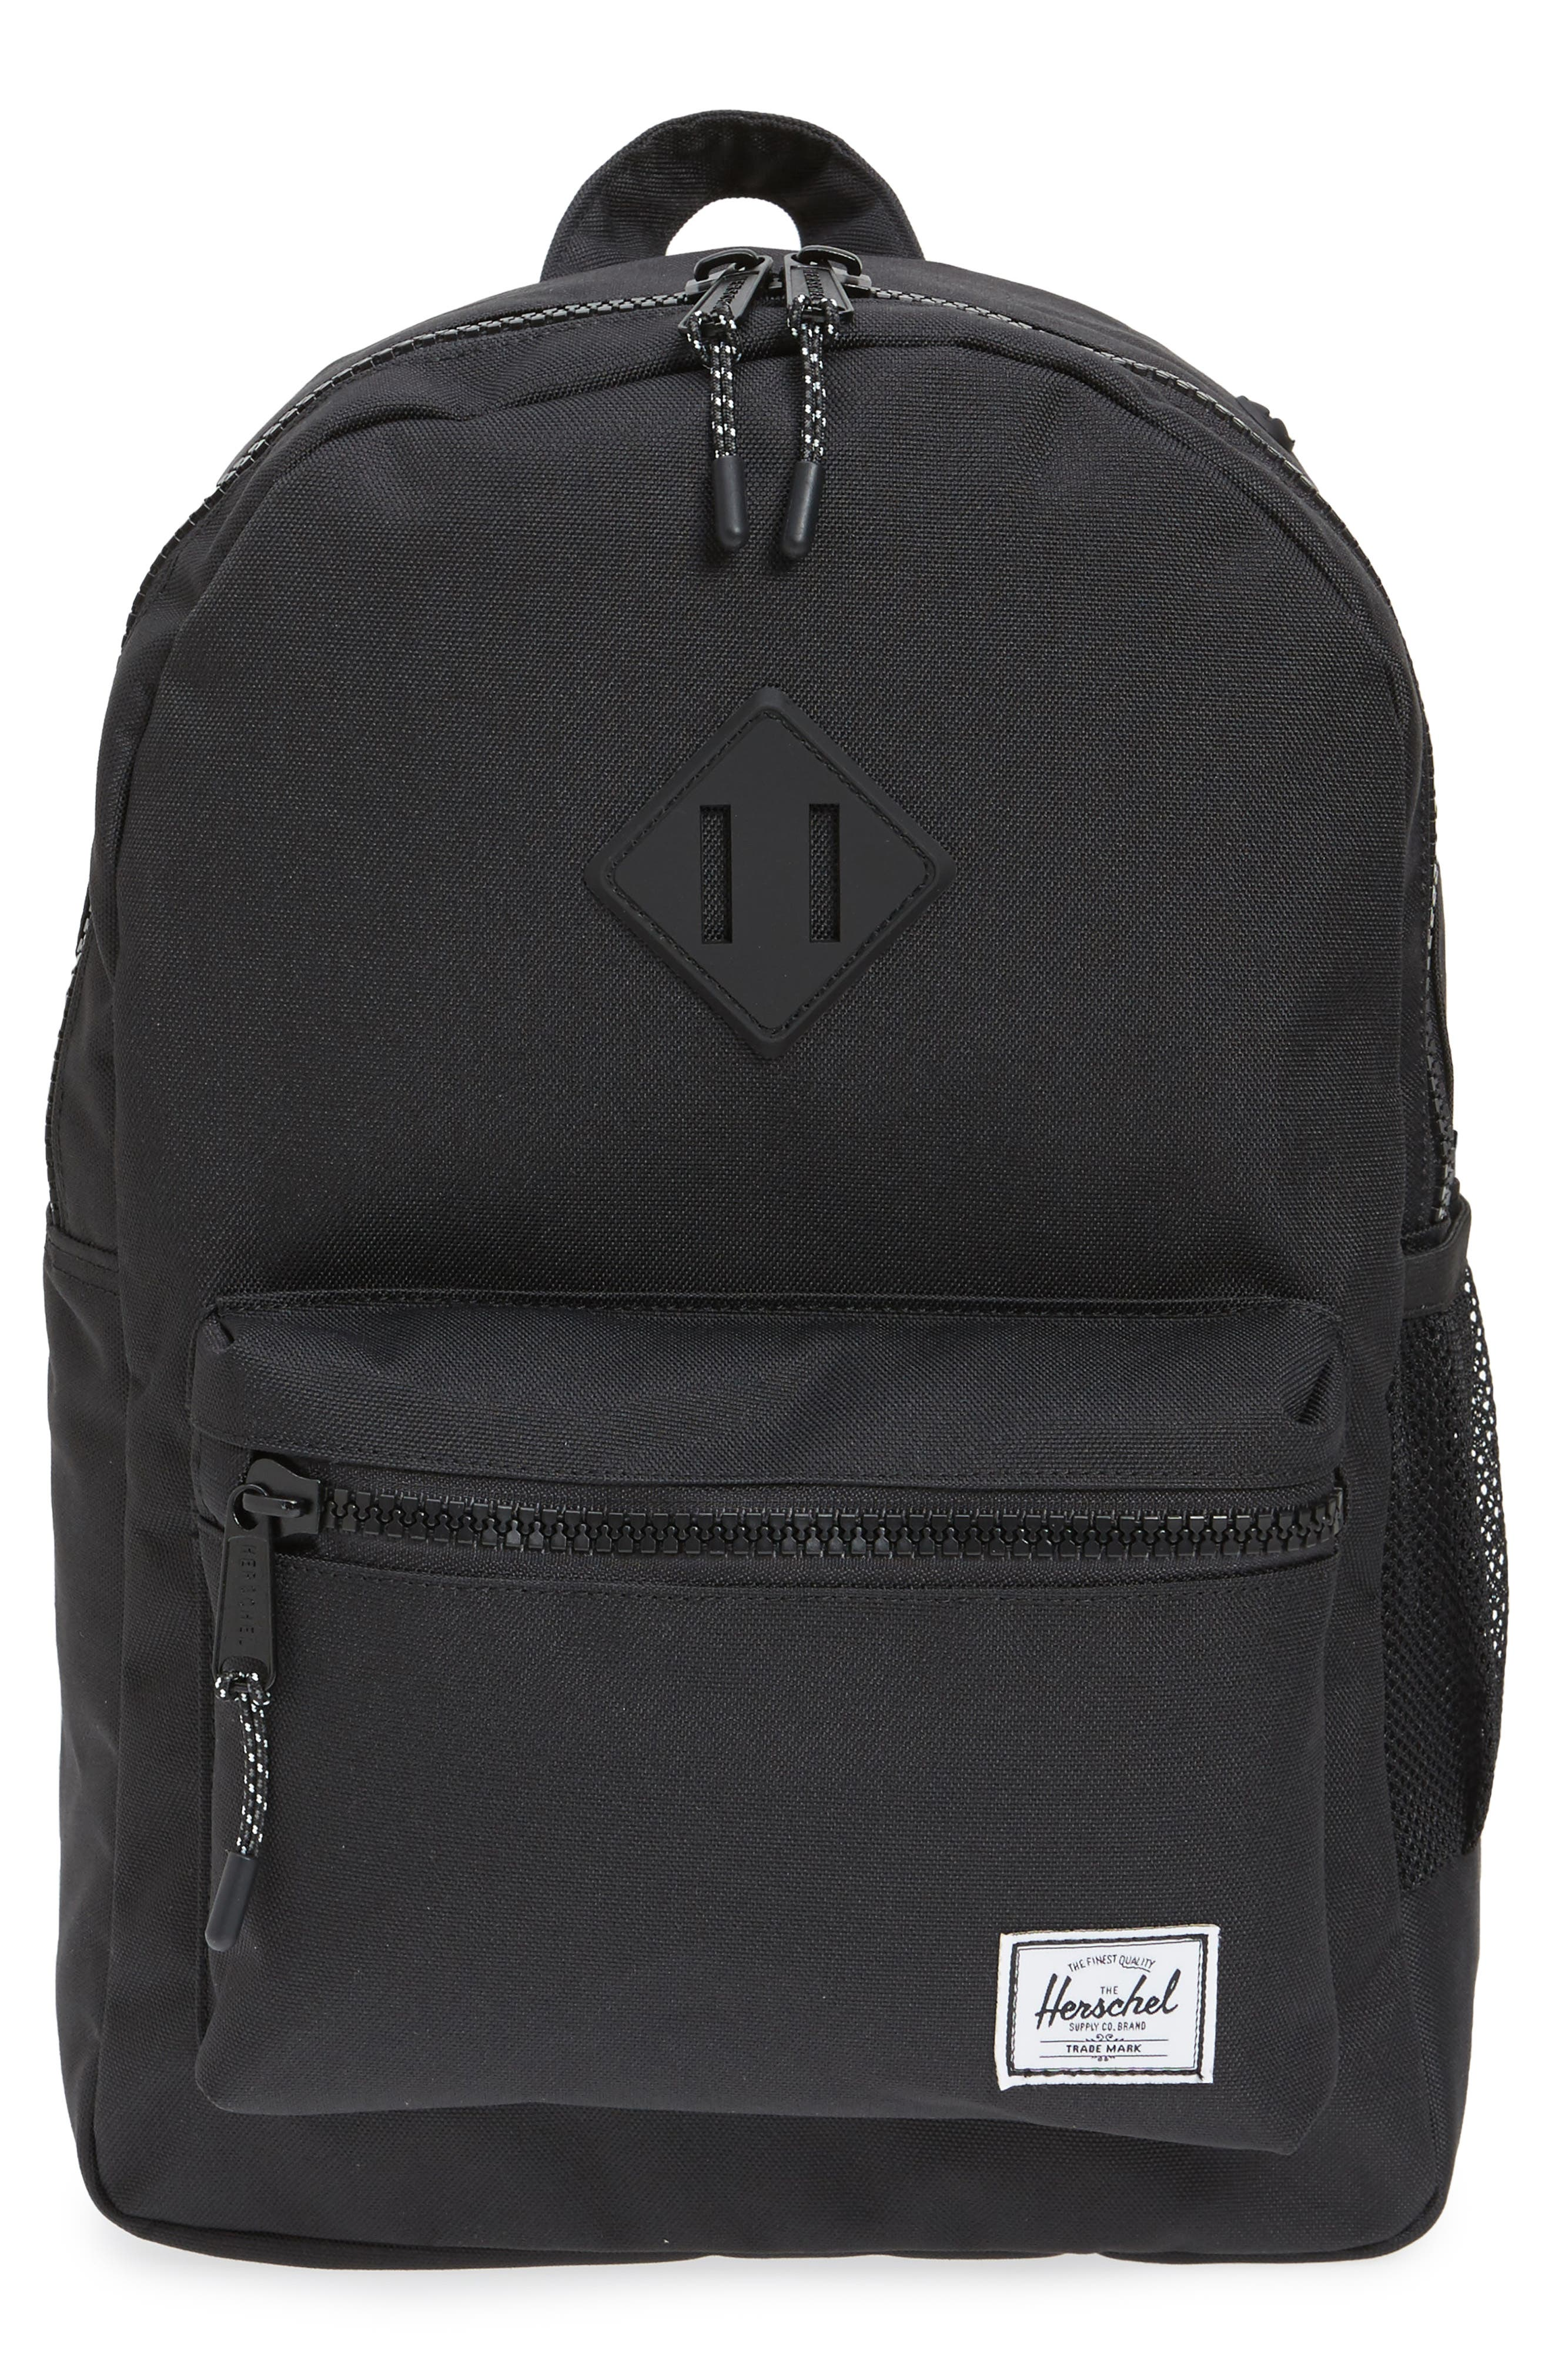 Heritage Backpack,                             Main thumbnail 1, color,                             Black/ Black Rubber